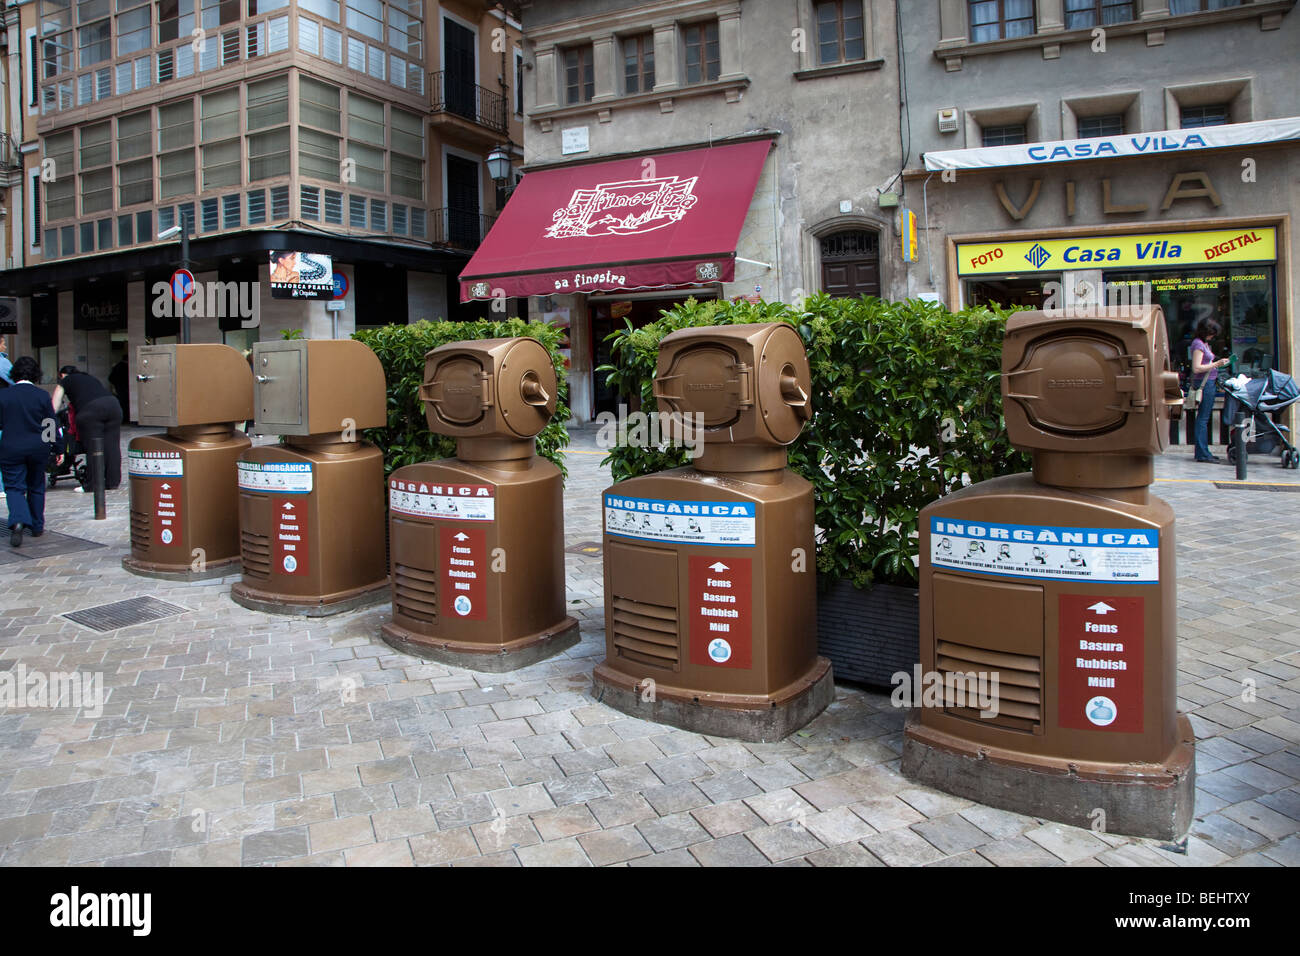 Recycling bins for organic and inorganic waste in centre of Palma Mallorca Spain Stock Photo